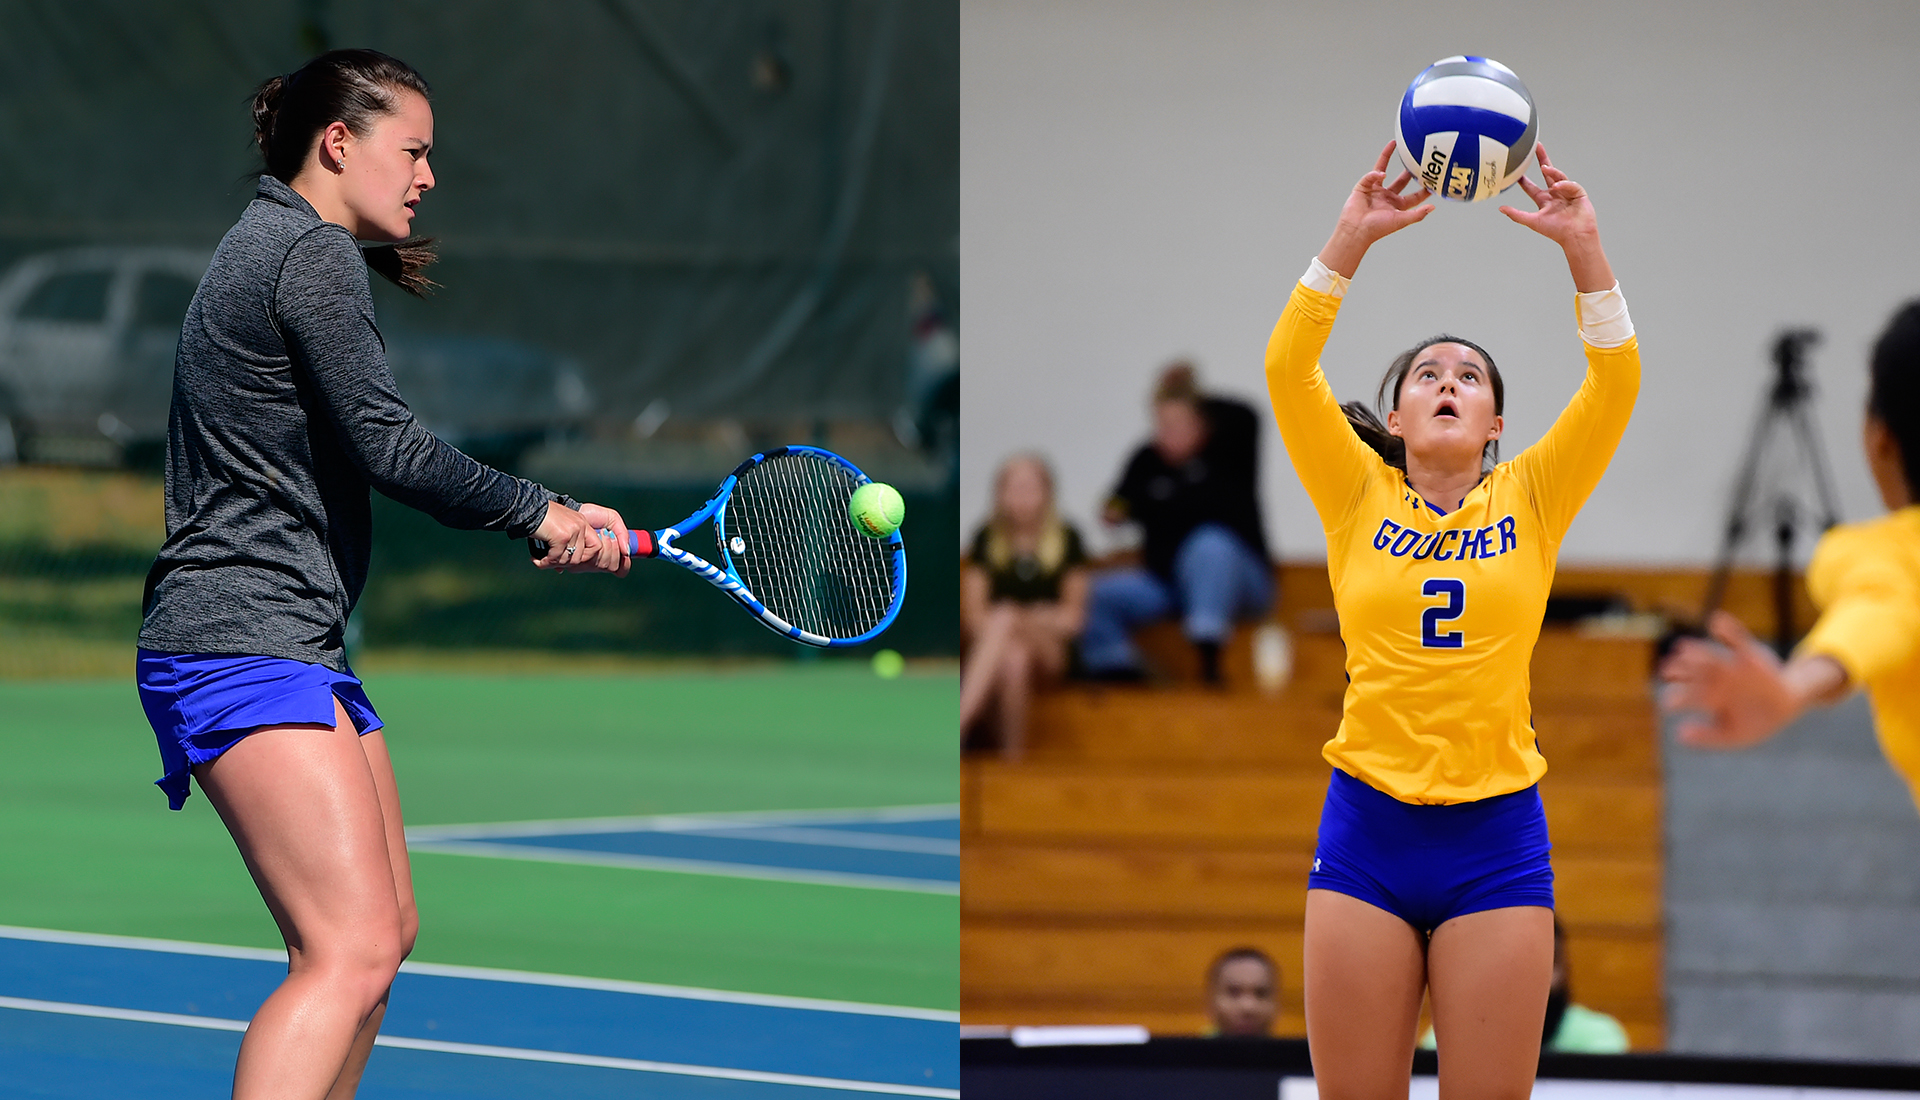 Tes DeJaeger Engineers Her Way As A Two-Sport Student-Athlete At Goucher College